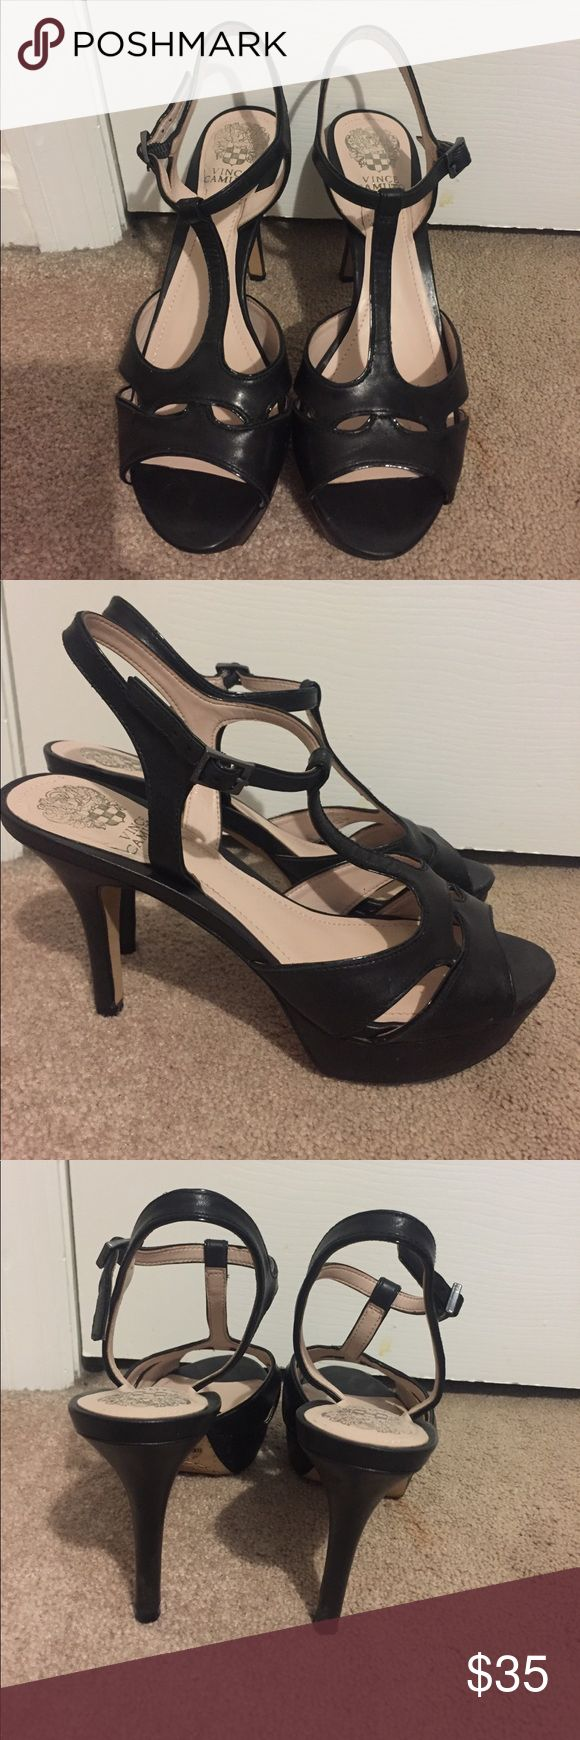 Vince camuto black heels Very cute heels that go with dresses and dressy pants Vince Camuto Shoes Heels